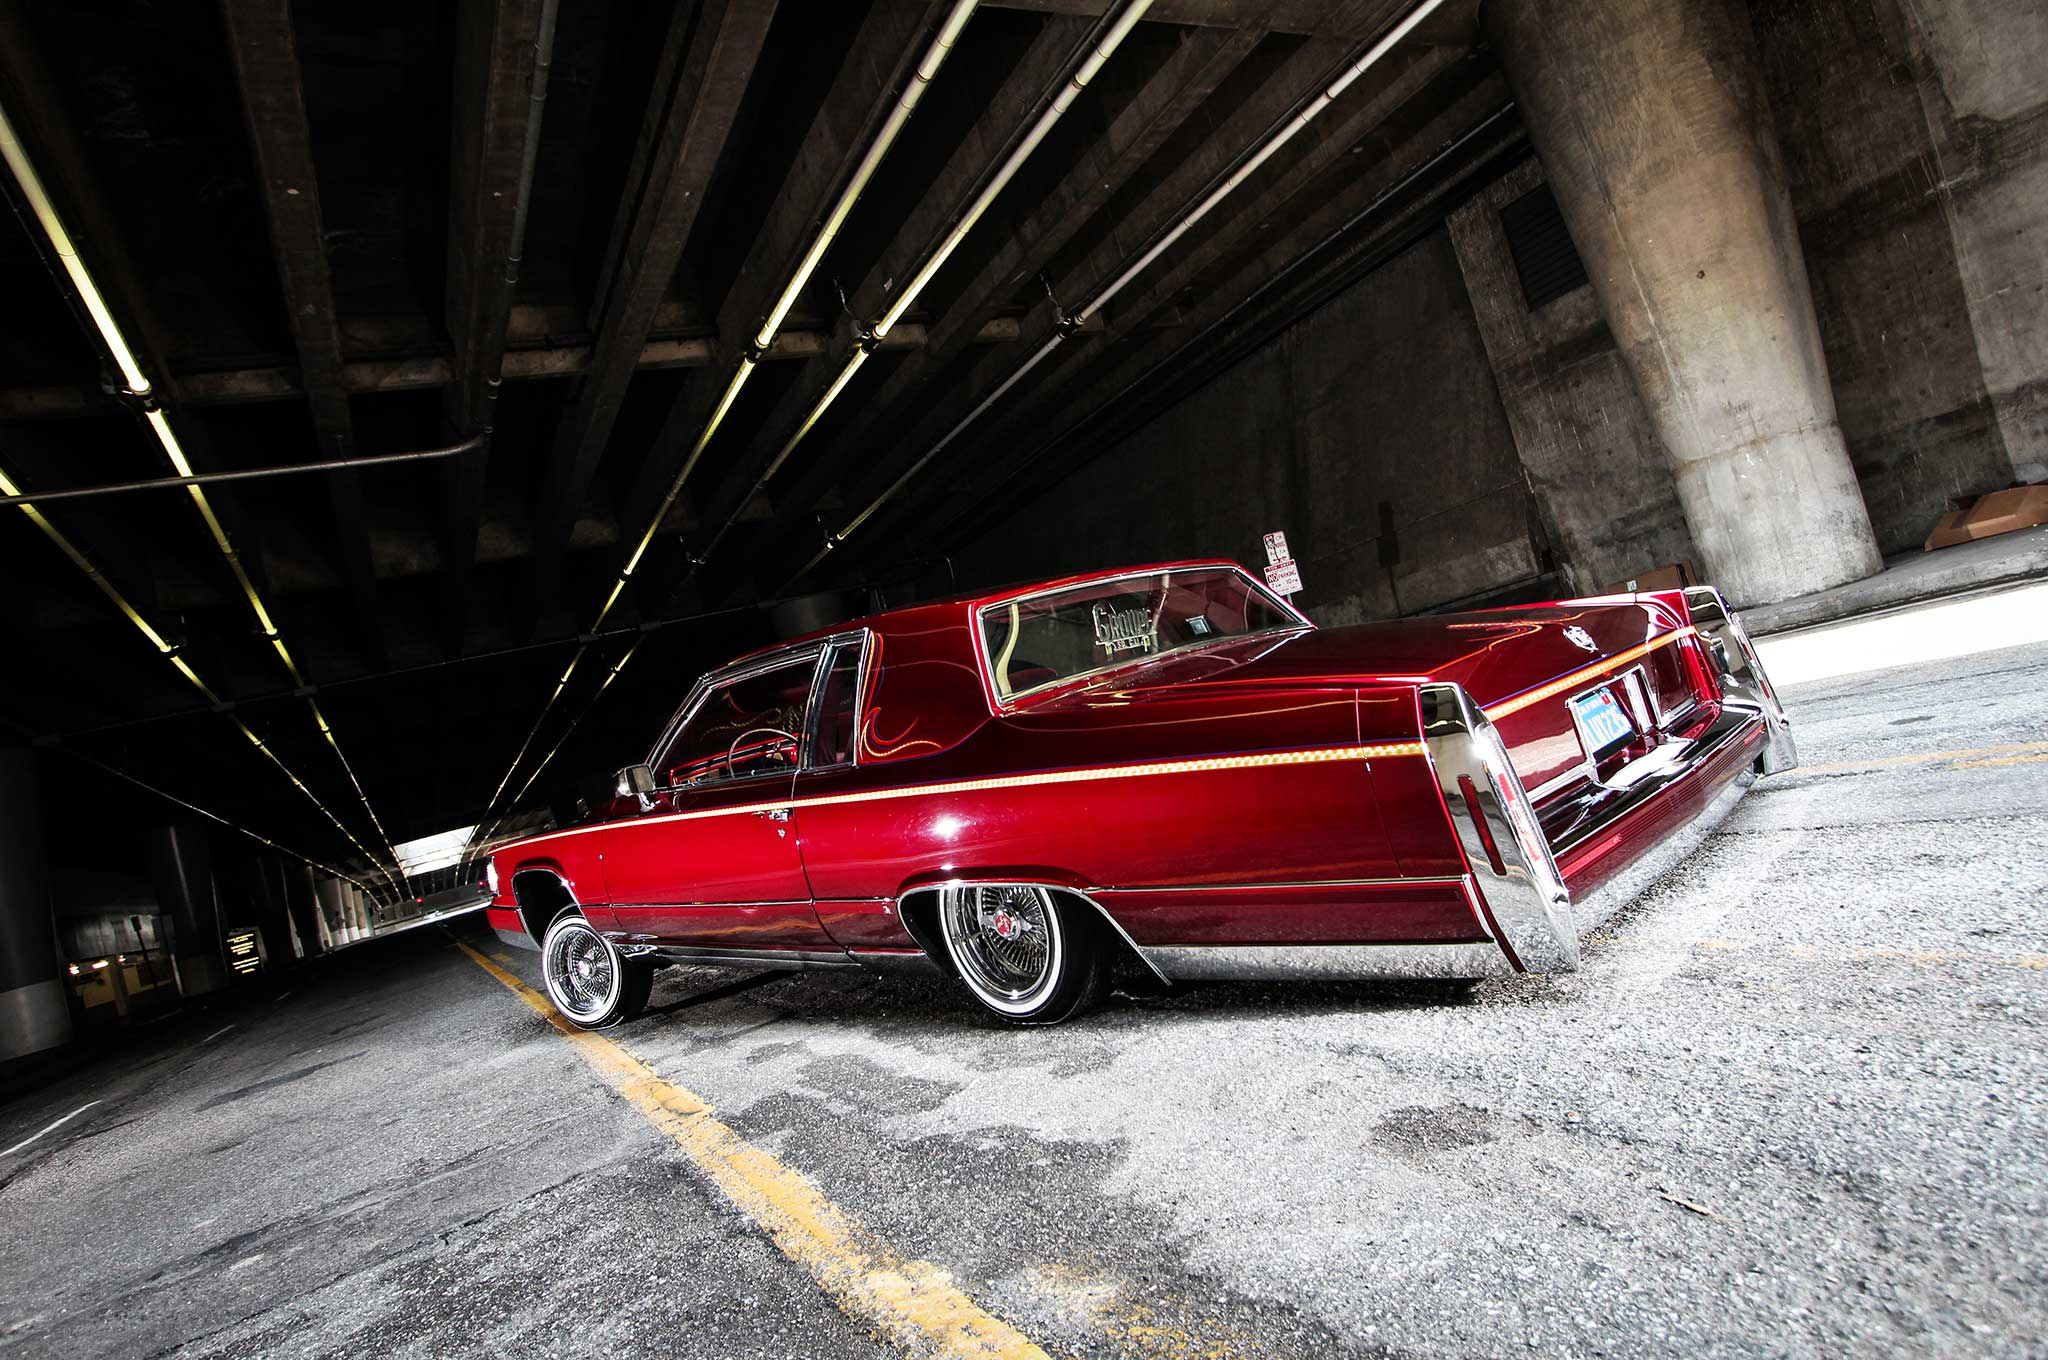 1983 Cadillac Coupe Deville Love Her Madly Lowrider